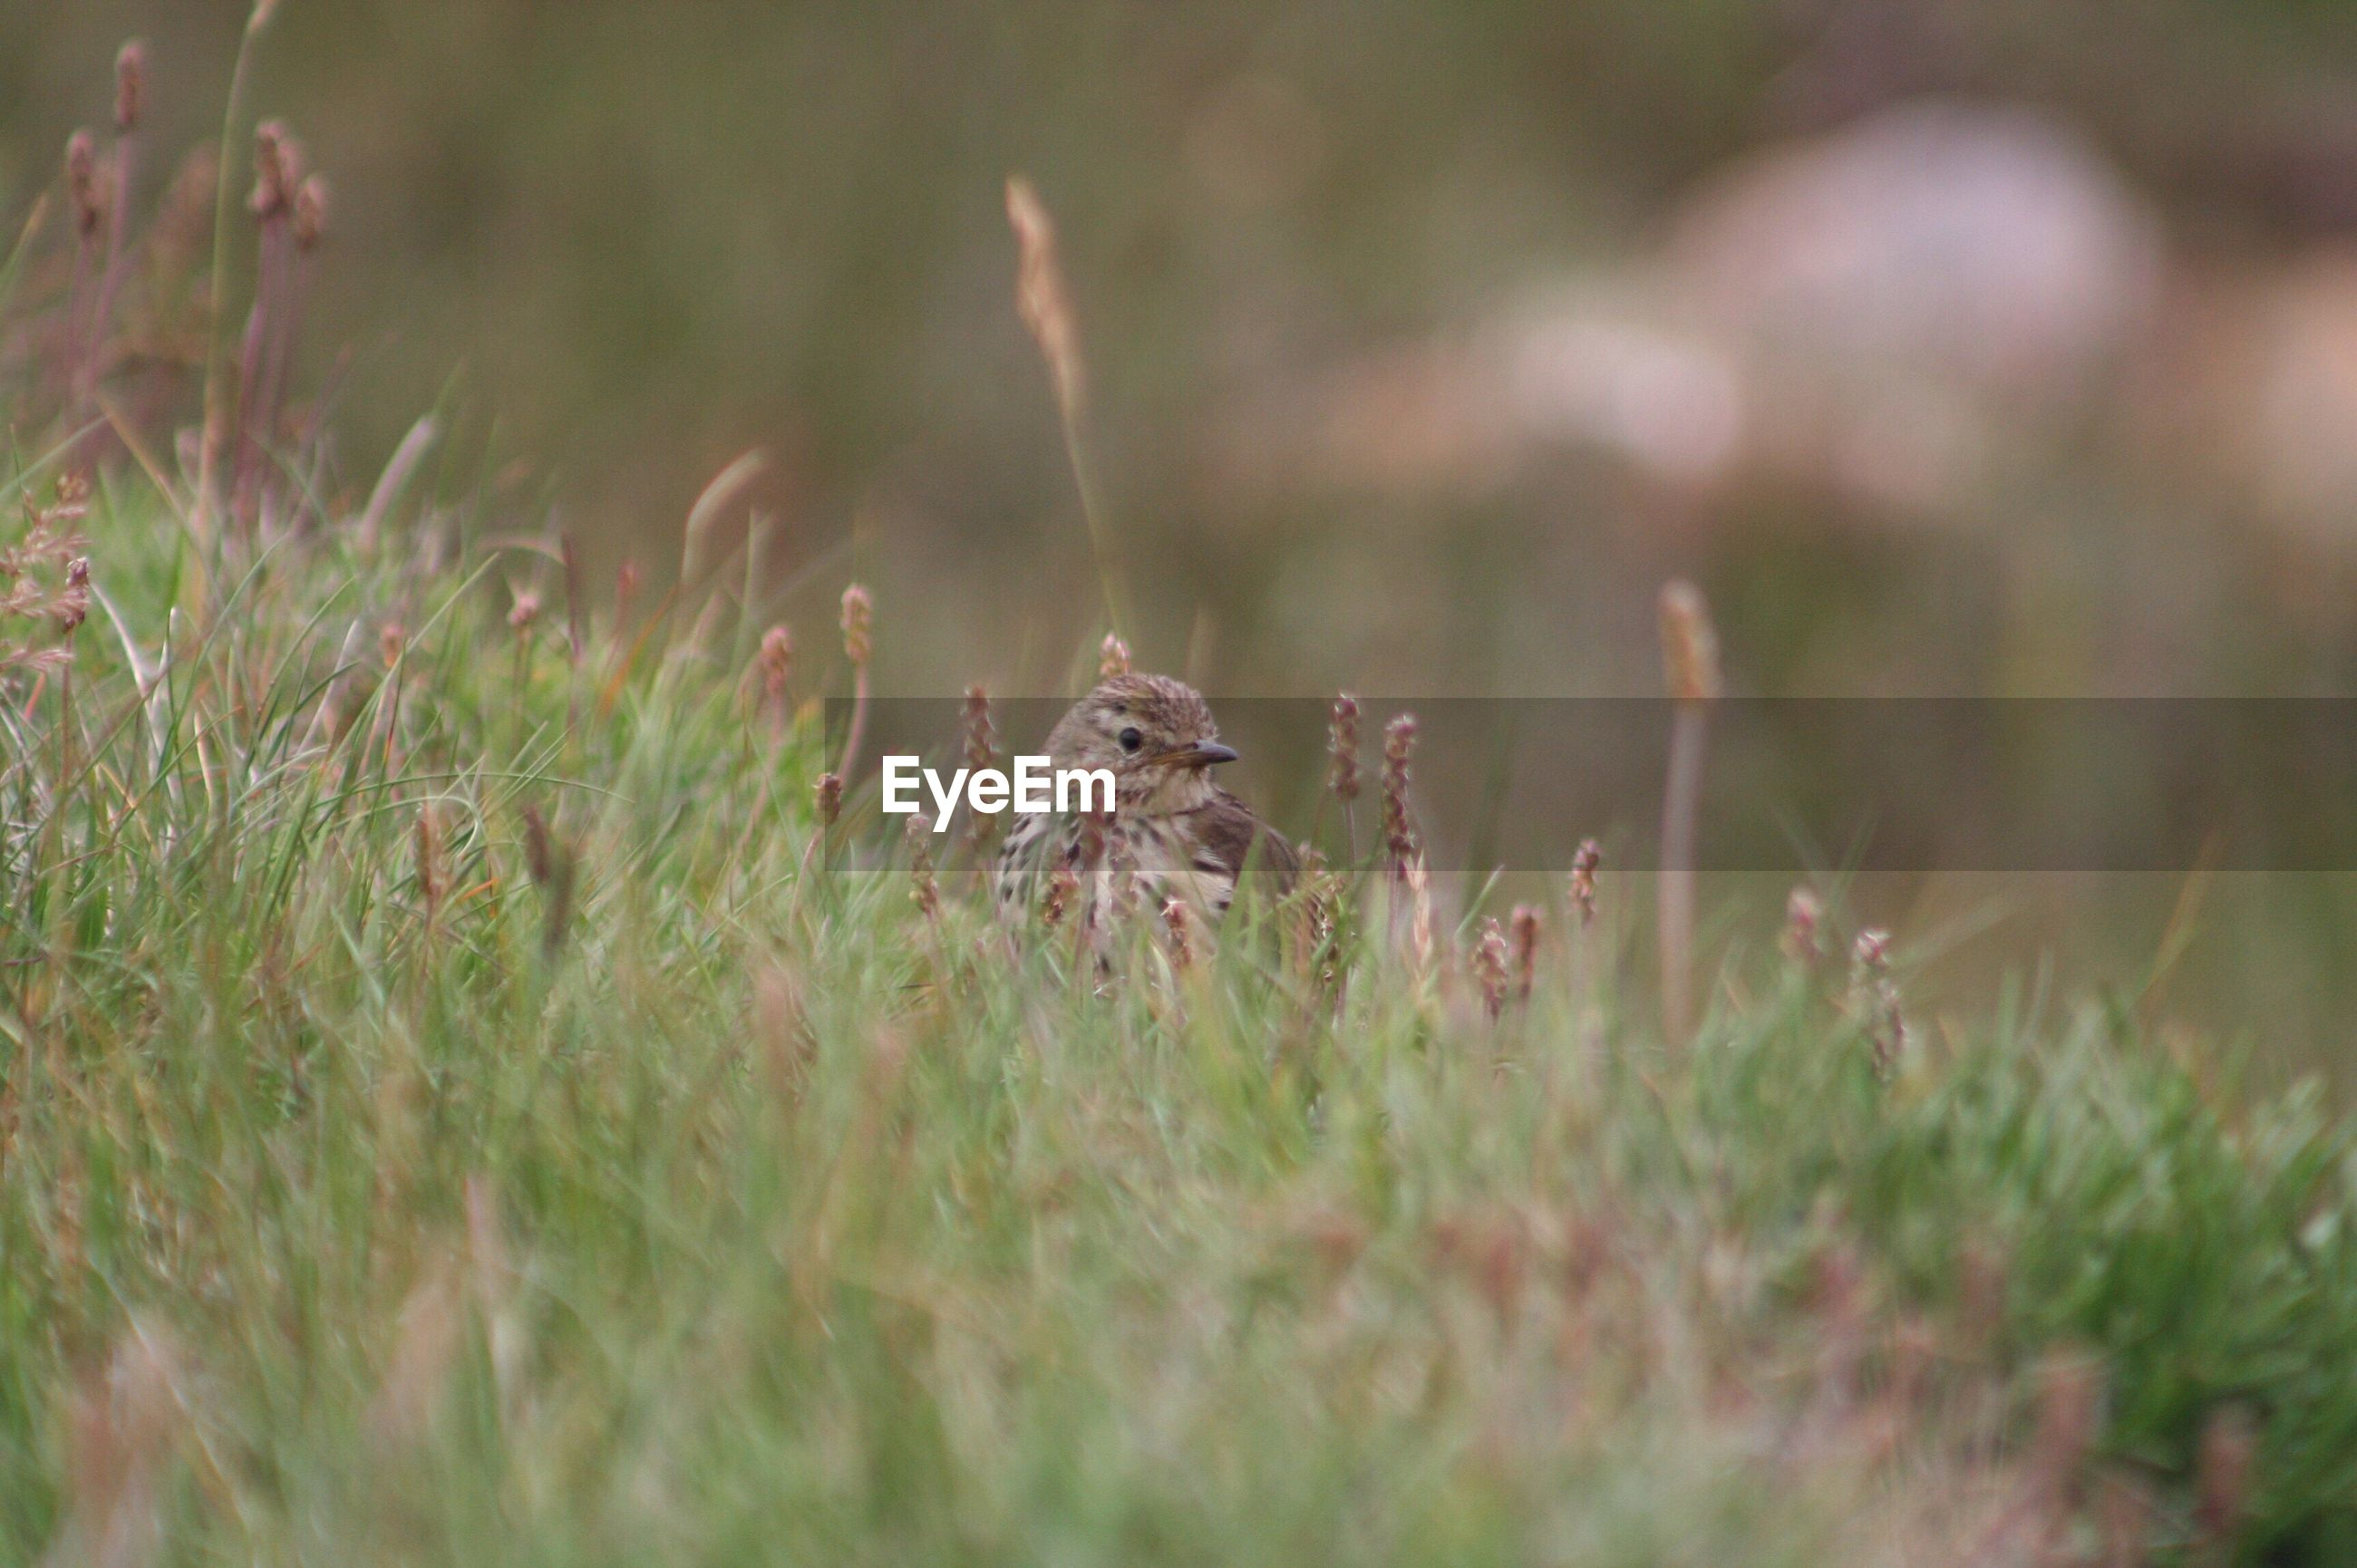 selective focus, plant, growth, grass, nature, focus on foreground, field, close-up, fragility, beauty in nature, outdoors, day, no people, stem, tranquility, green color, growing, grassy